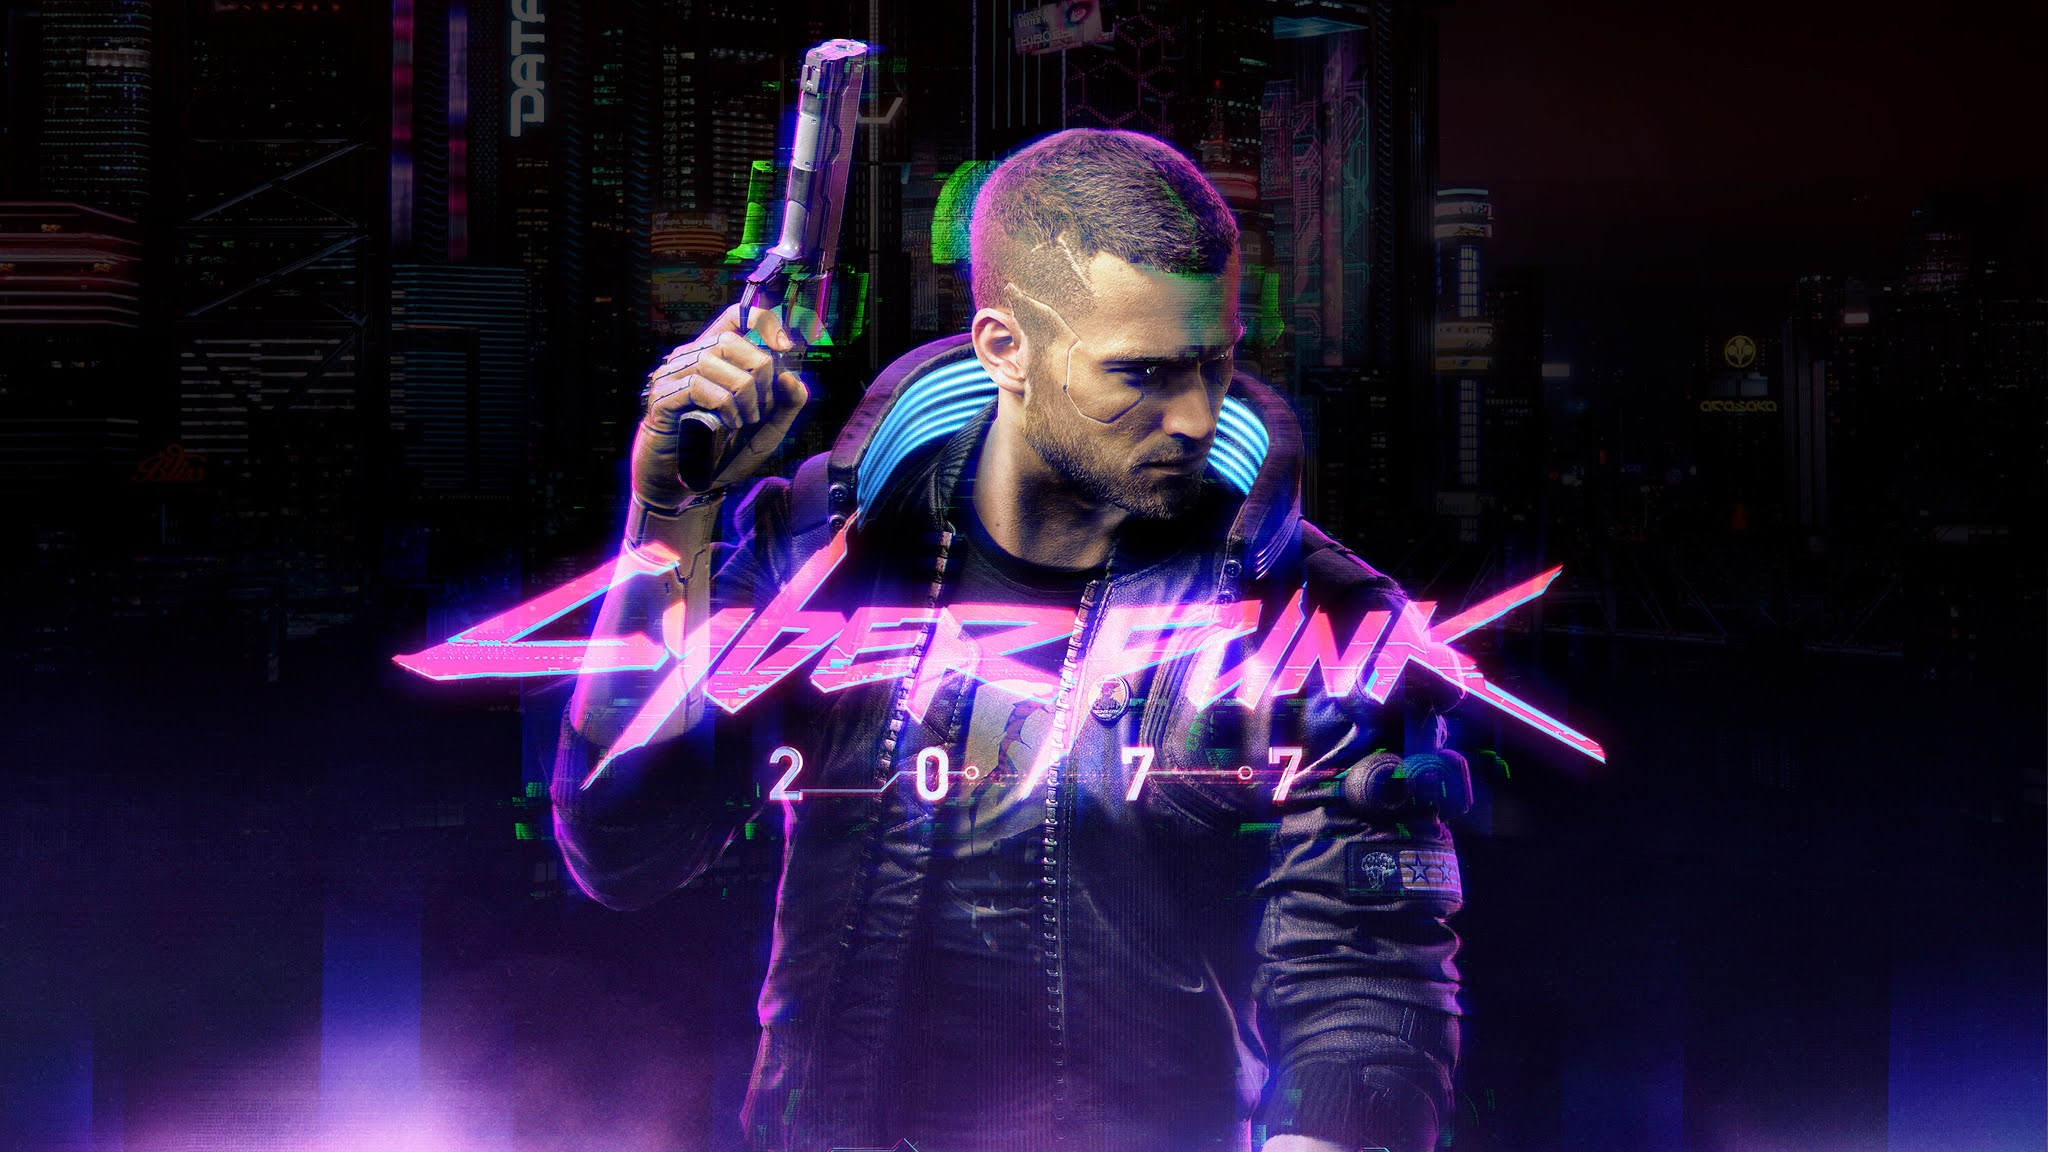 CD Projekt Red reacted to the comparison of Cyberpunk 2077 with Hitler